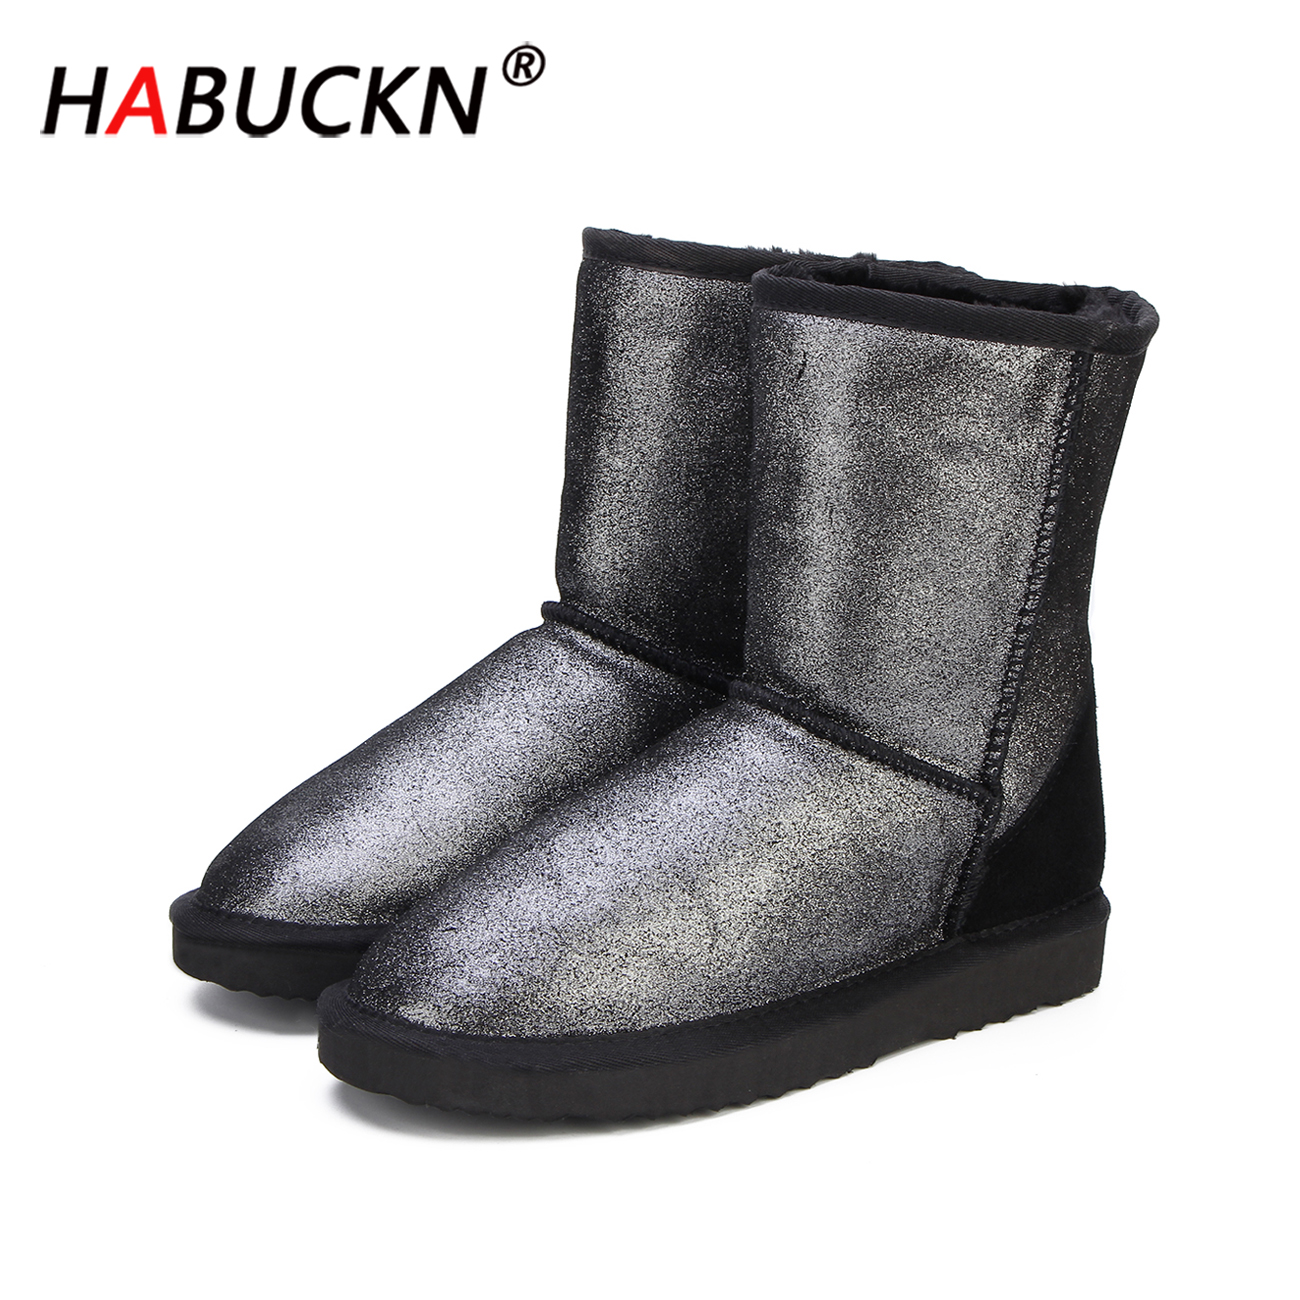 HABUCKN 2020 Top Quality Genuine Leather Snow Boots for Women Waterproof Winter Boots Women Warm Boots 2 Colour shoes US 3-13 image